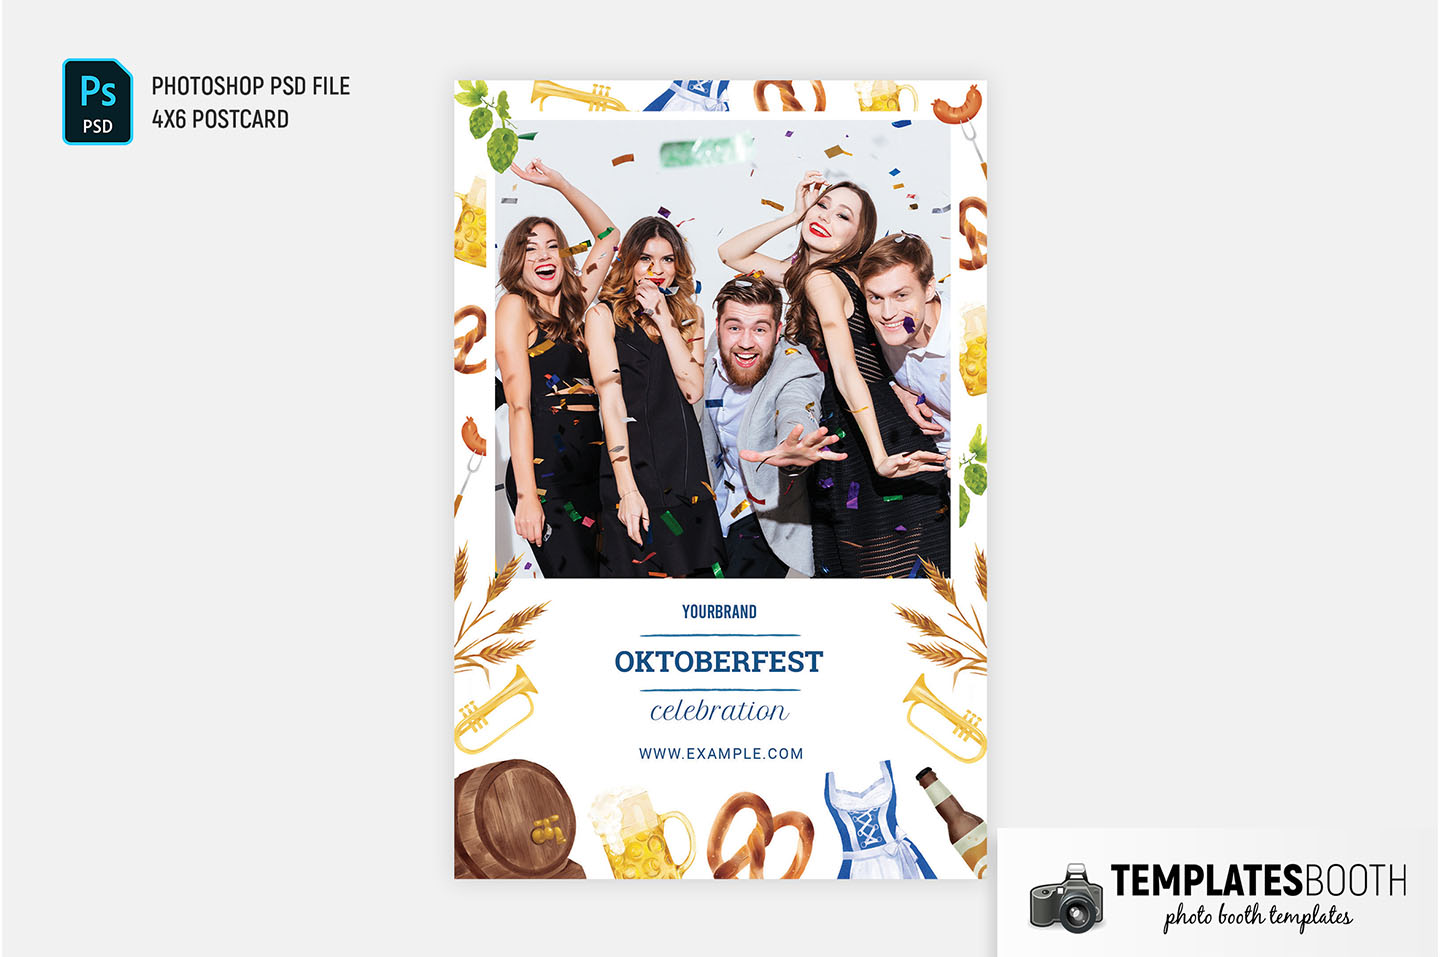 Oktoberfest Photo Booth Template for DSLR Booth, Photoshop & PNG